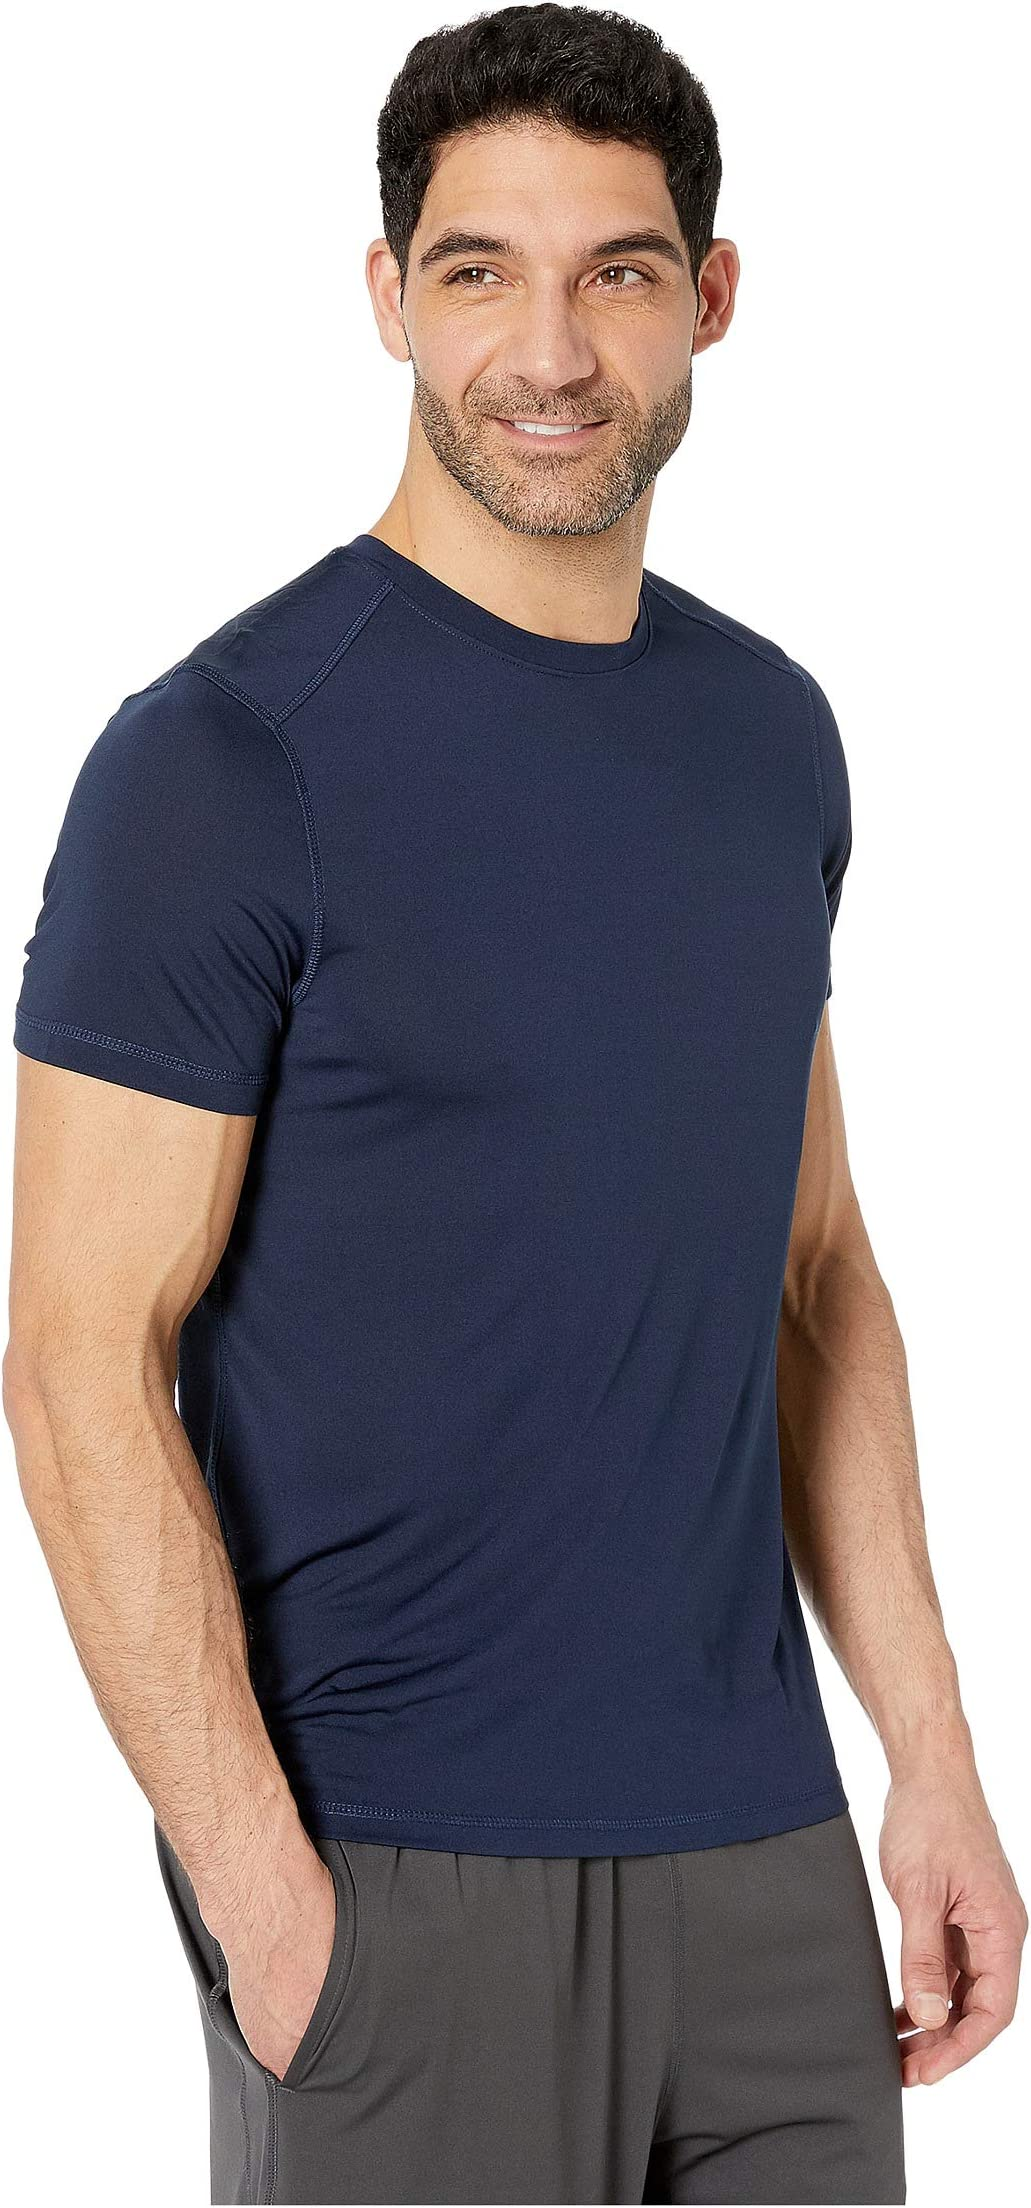 Jockey Active Short Sleeve Core Tee bwxcF